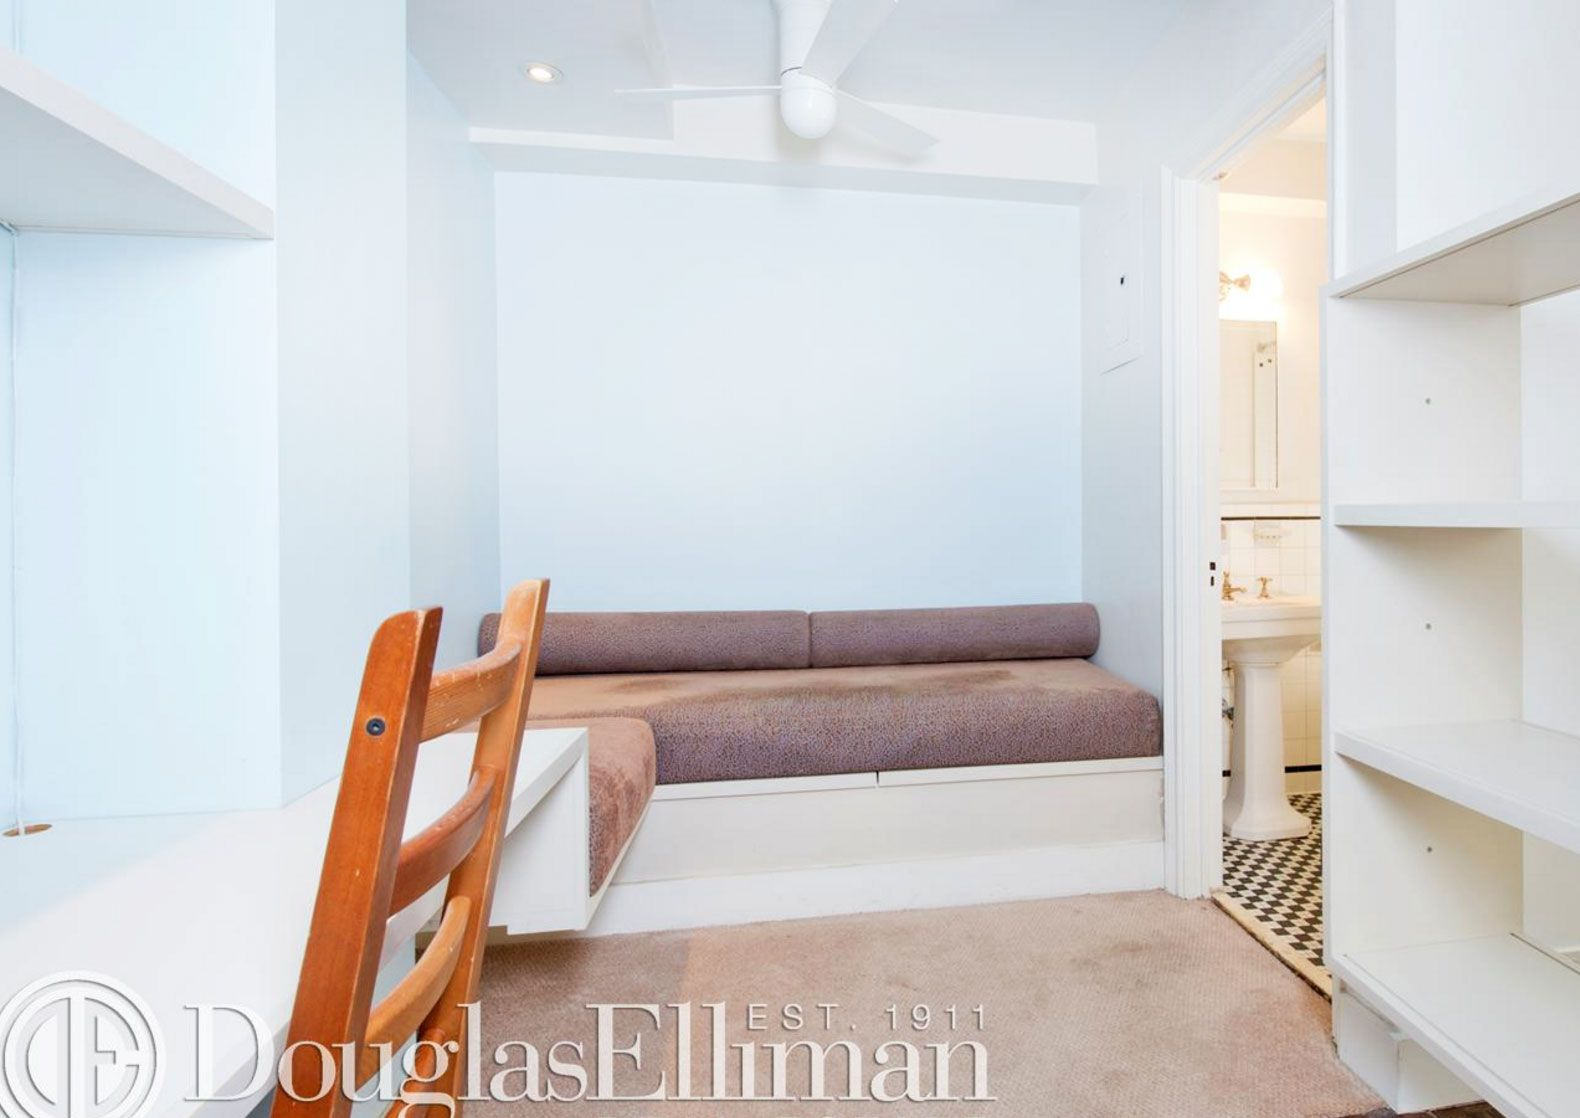 Miniature Manhattan Studio Comes With Pre Installed Murphy Bed And Lots Of Built In Storage Built In Storage Tiny Apartments Murphy Bed